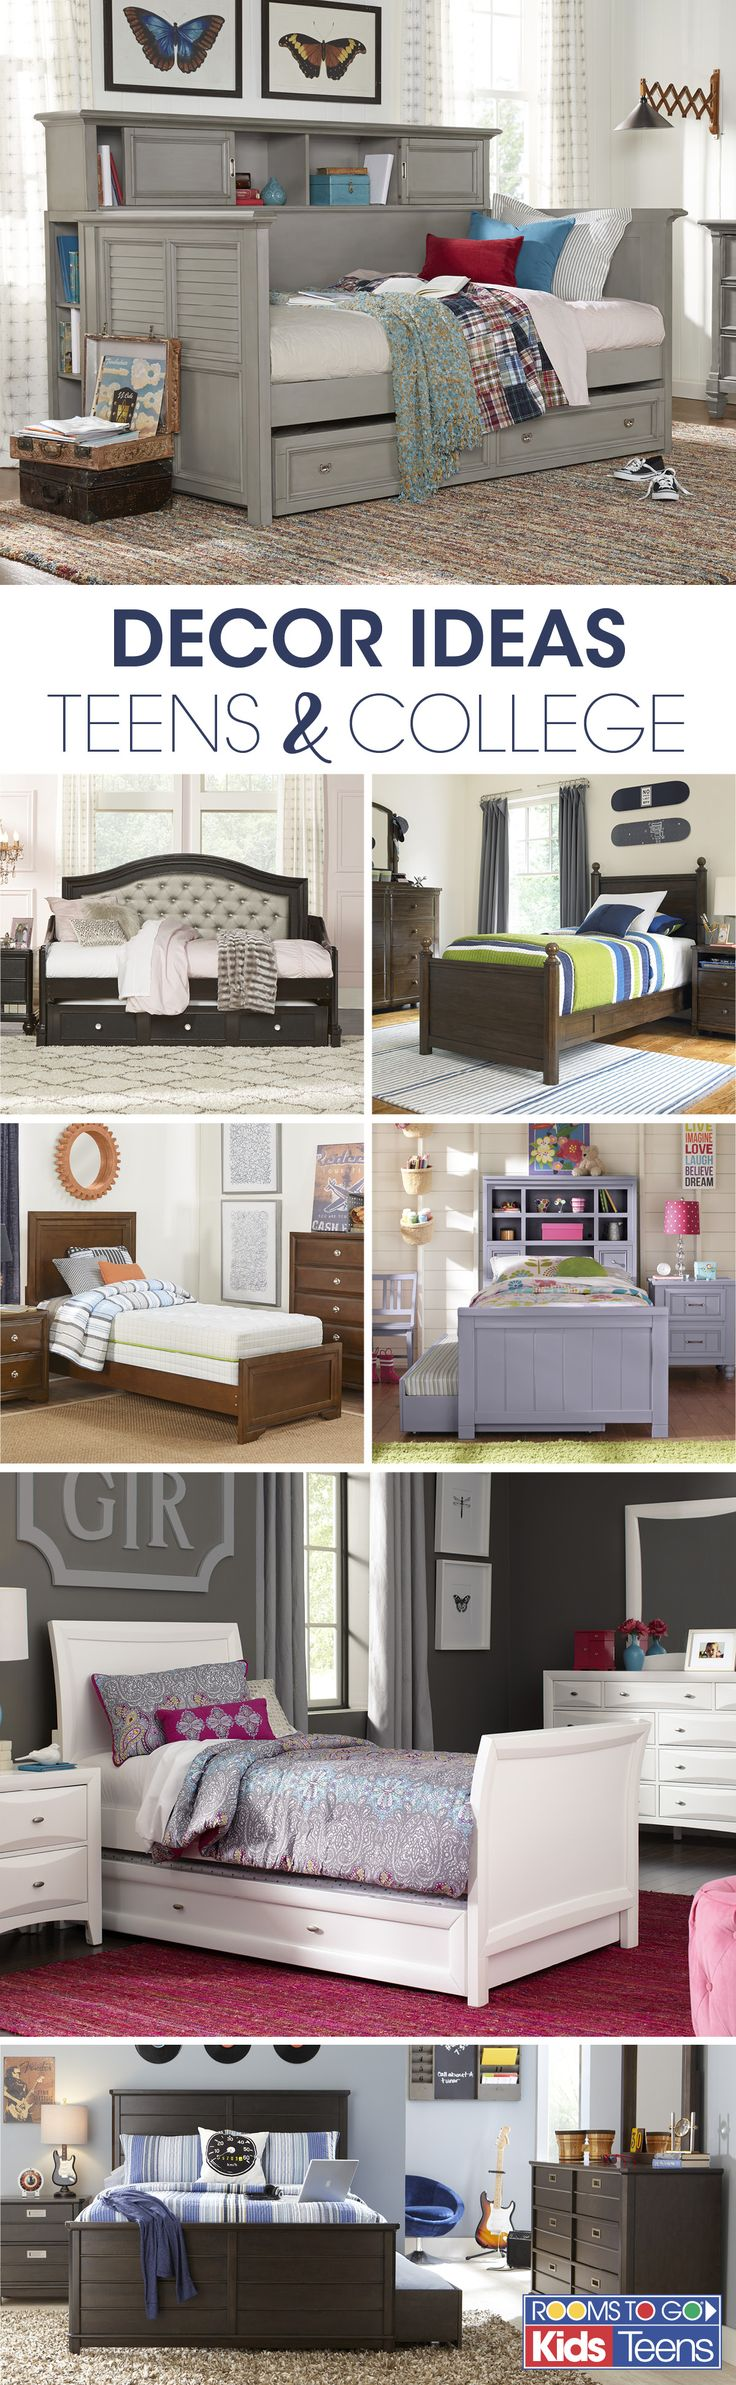 With decorator inspired room sets that come in a range of colors, styles and sizes, Rooms To Go Kids makes finding the perfect bed for your teenager or college student easy and fun! Visit Rooms To Go Kids now to see these beautiful teens' bedroom sets and more!